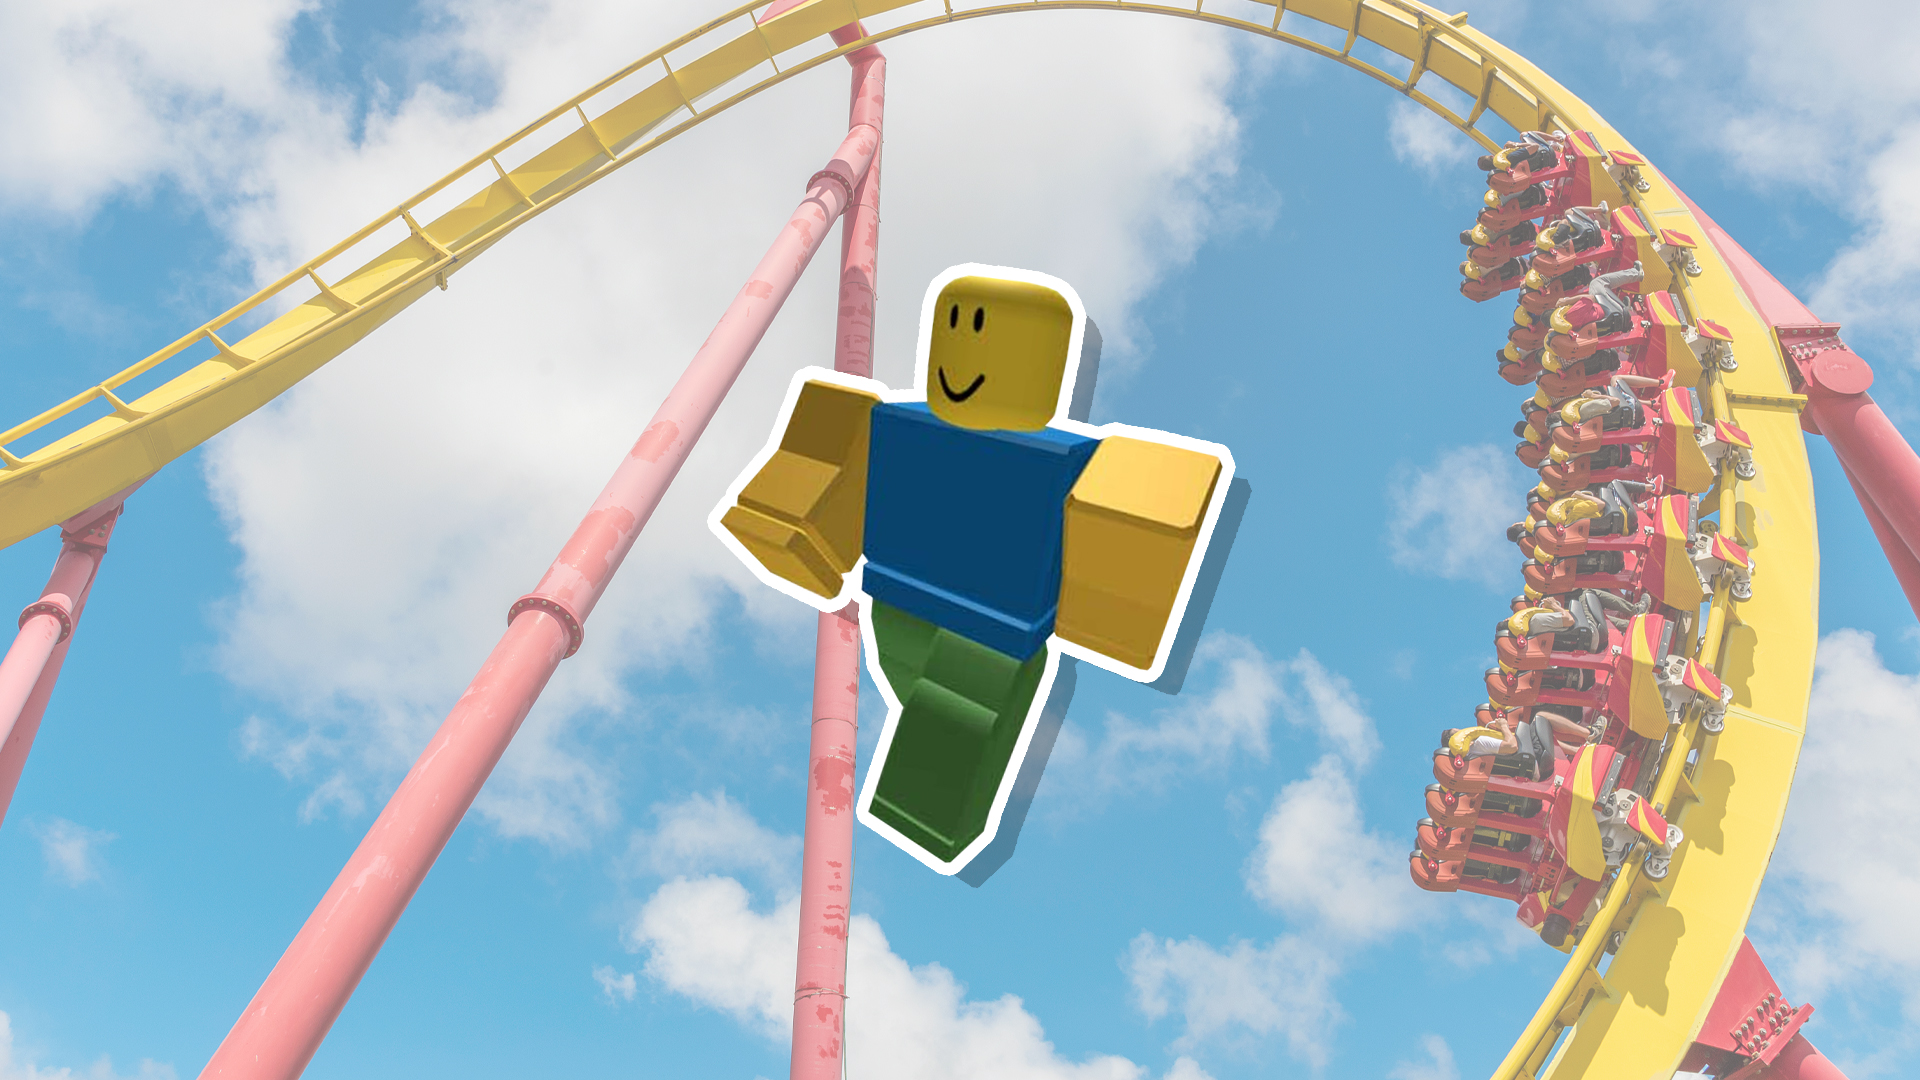 A Roblox character next to a rollercoaster